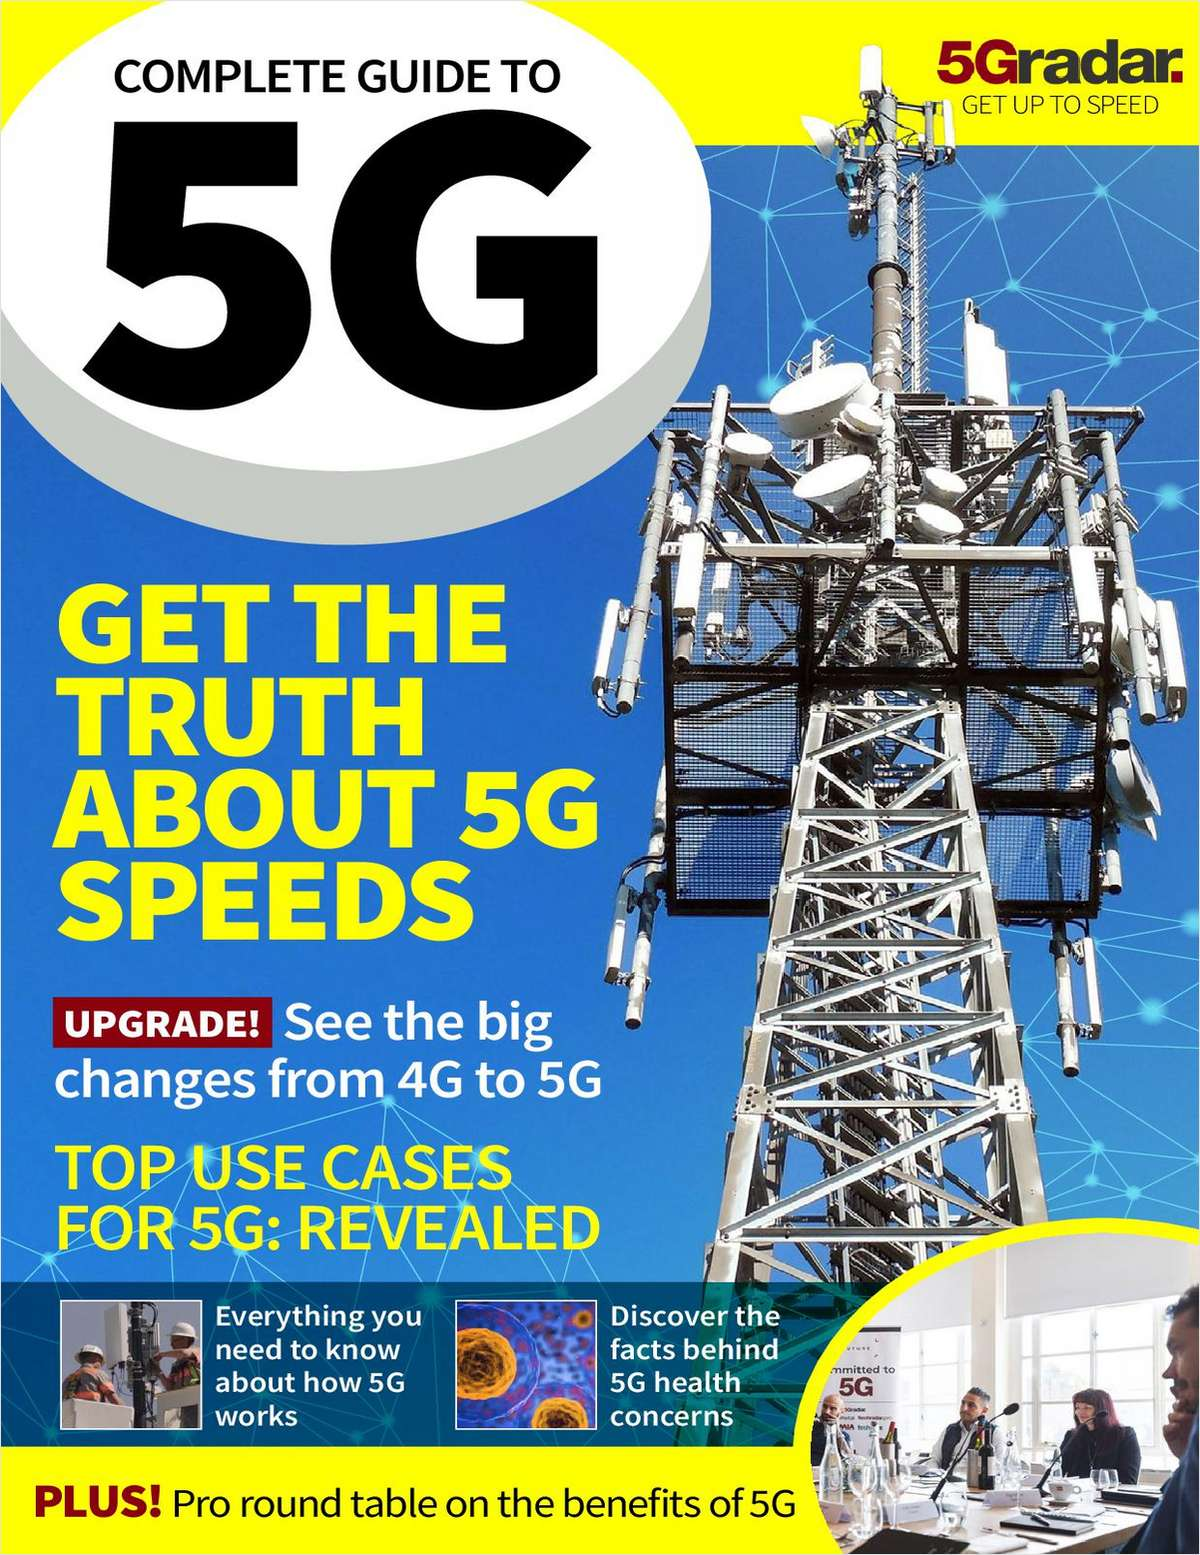 Complete Guide to 5G